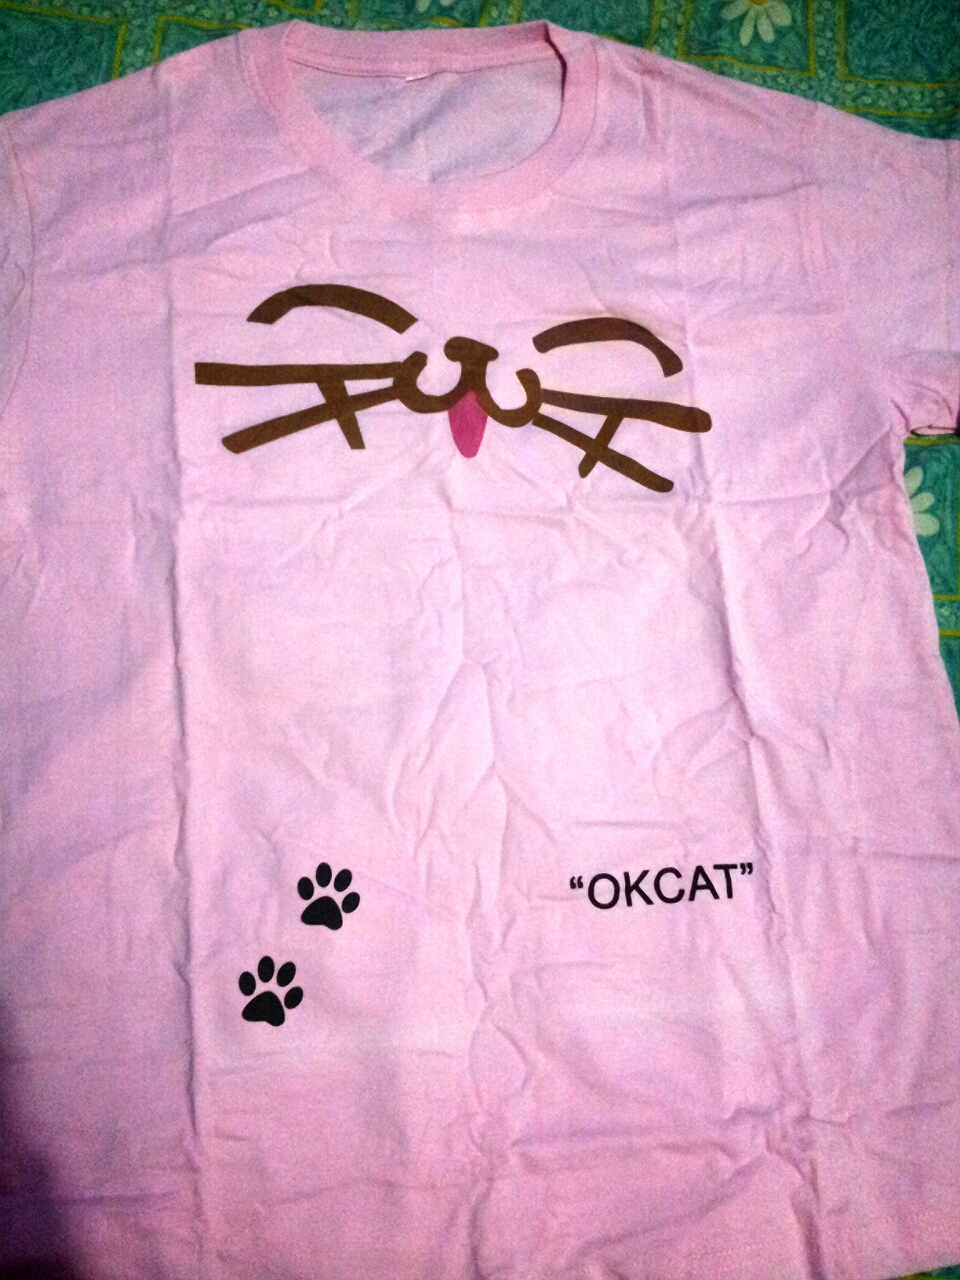 Ini design khusus HOTTEST specially oktizen. ^^ kaos repkika ok.cat ini cuma